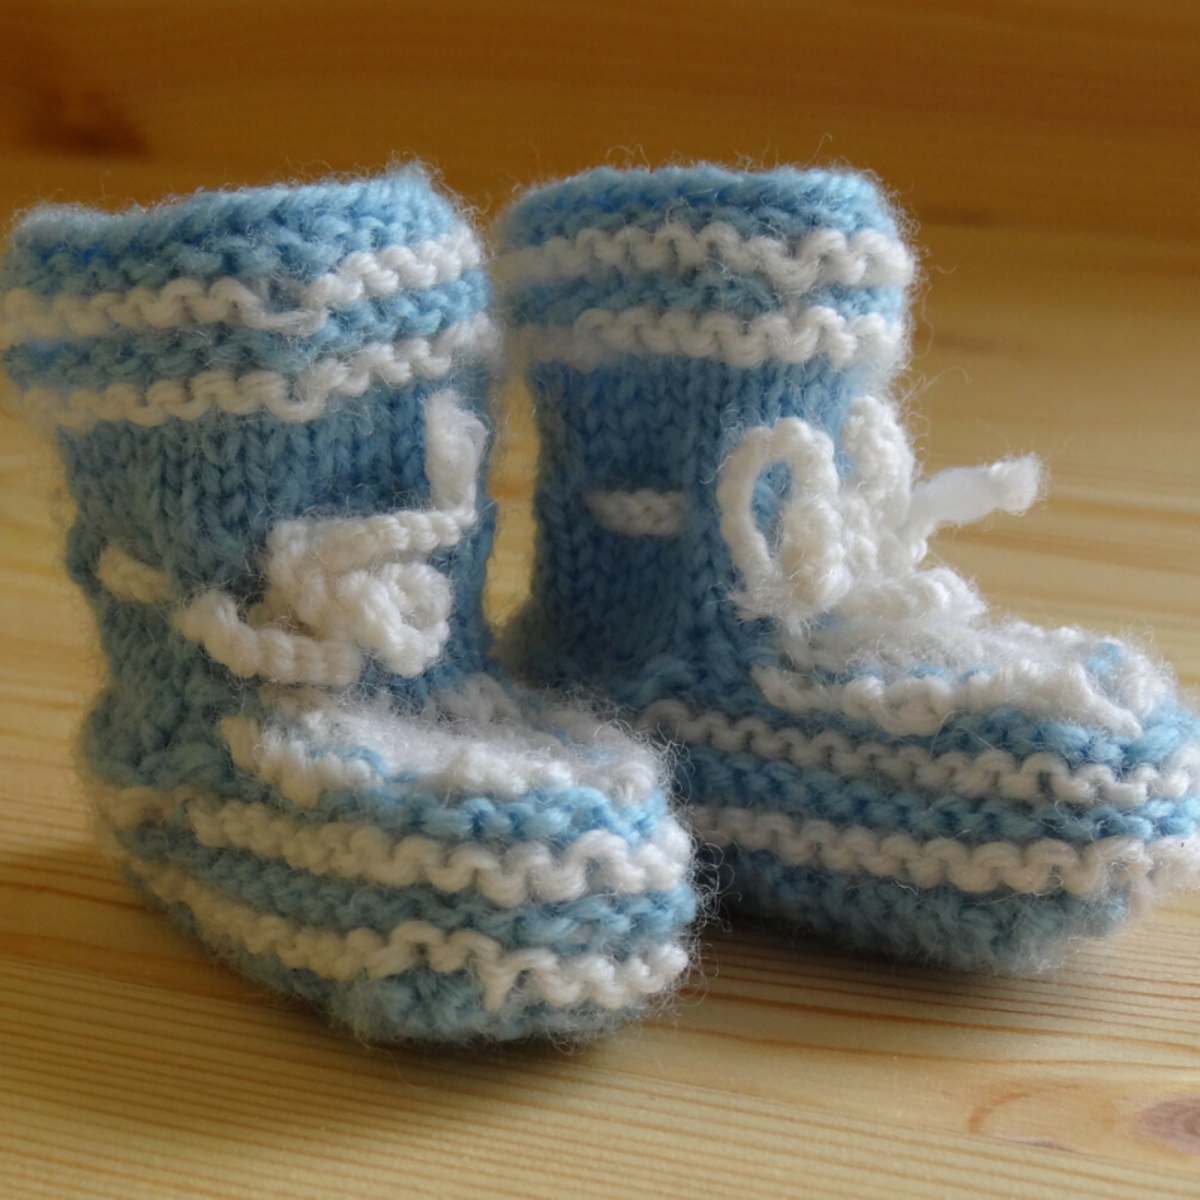 Babies don't really need to wear shoes until they start walking, but they sure look adorable in these faux-shoe socks.